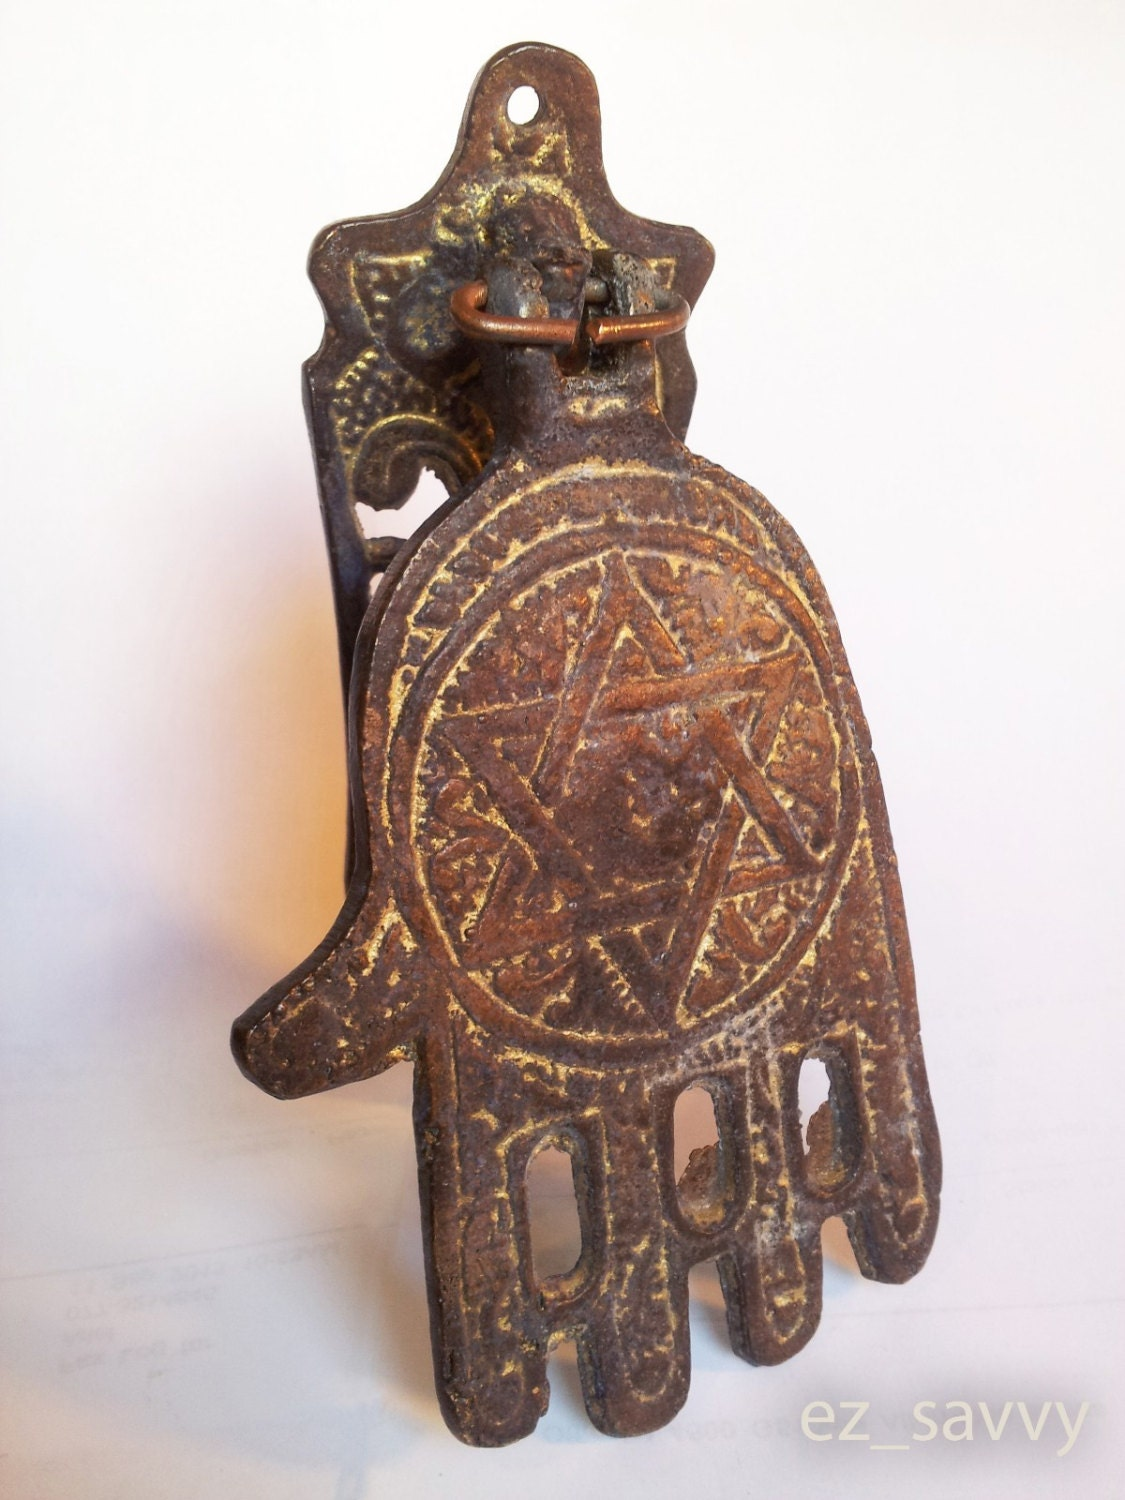 Antique style bronze jewish hamsa door knocker vintage design - Antique bronze door knocker ...